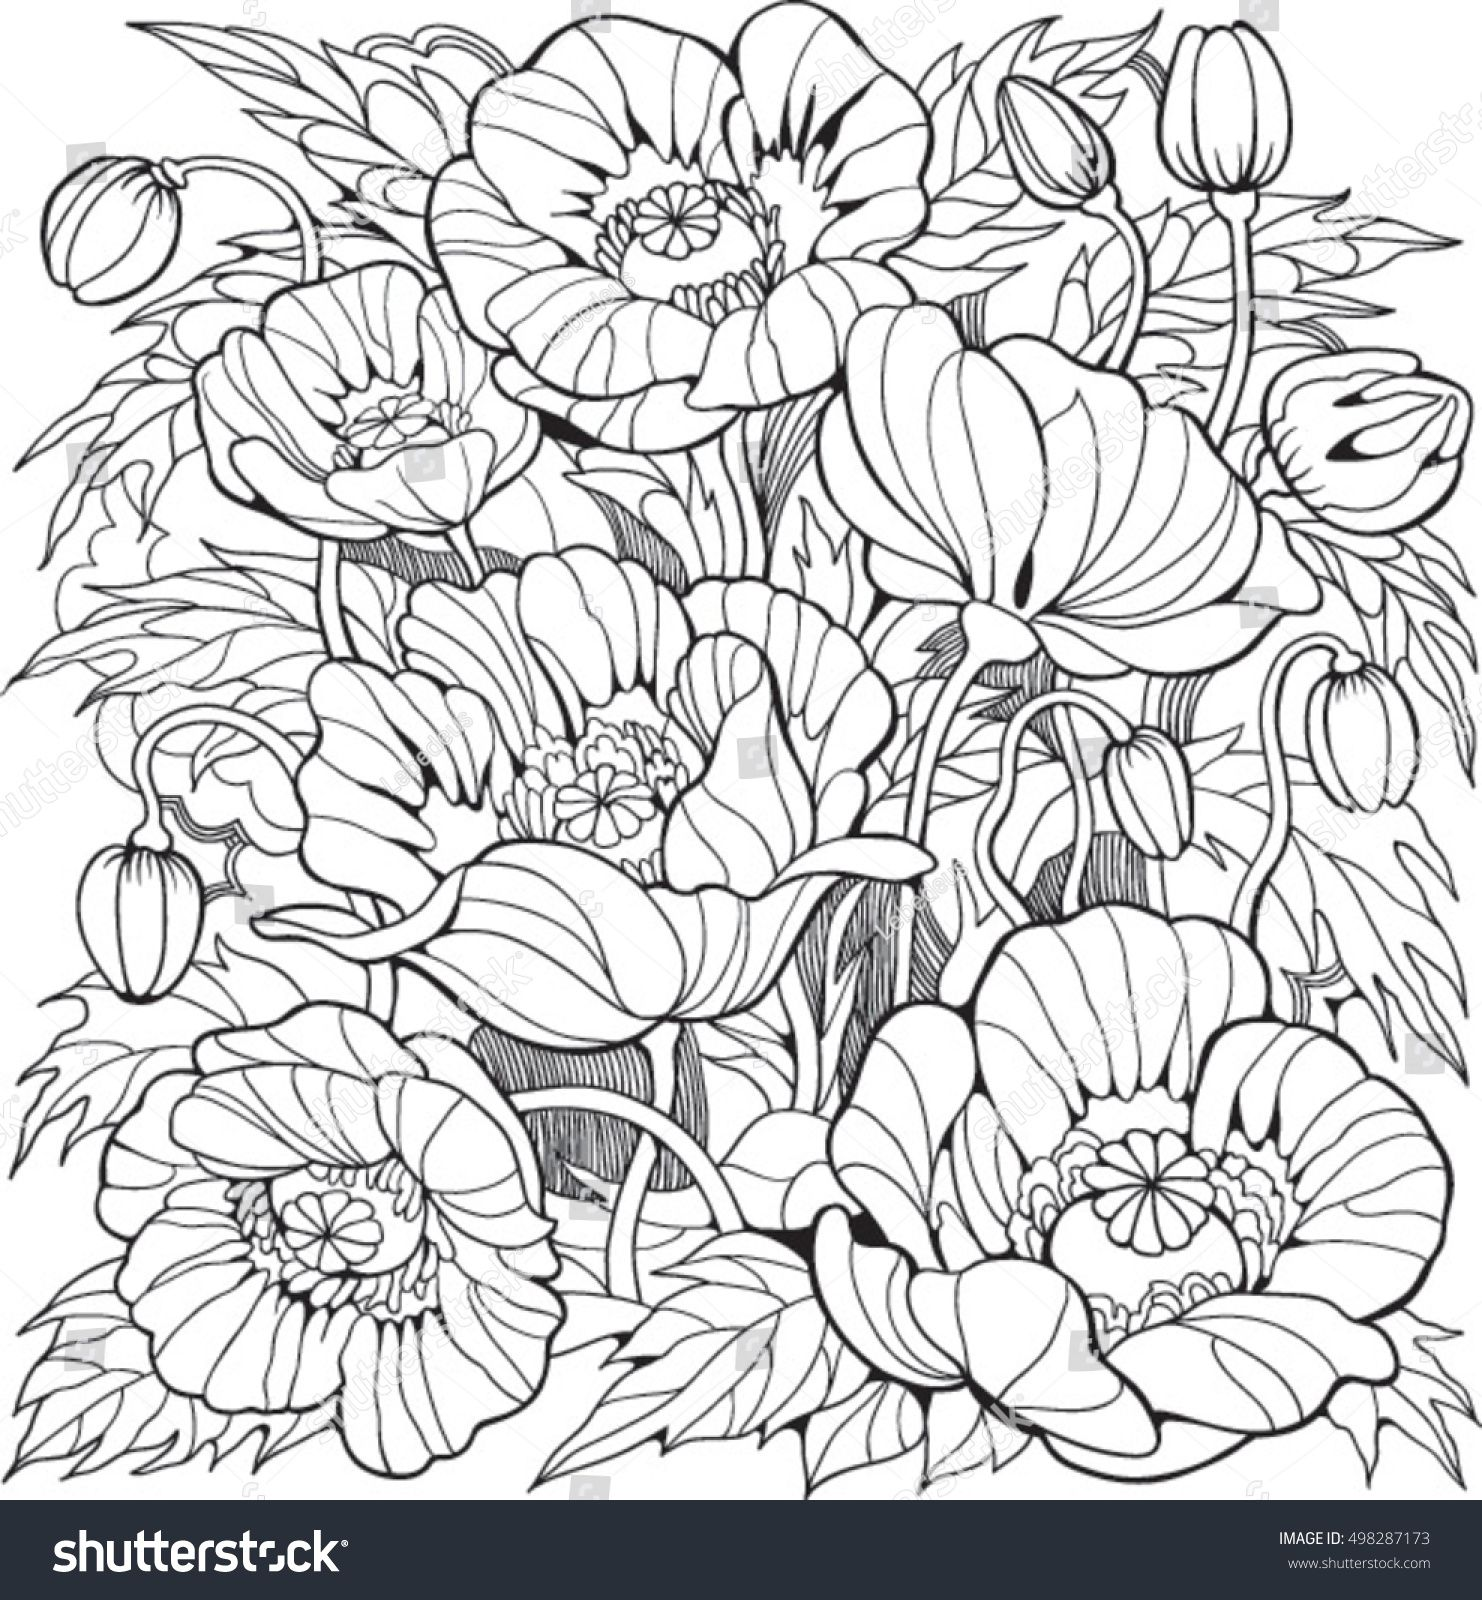 Poppy flowers. Coloring page for adult and older children ...